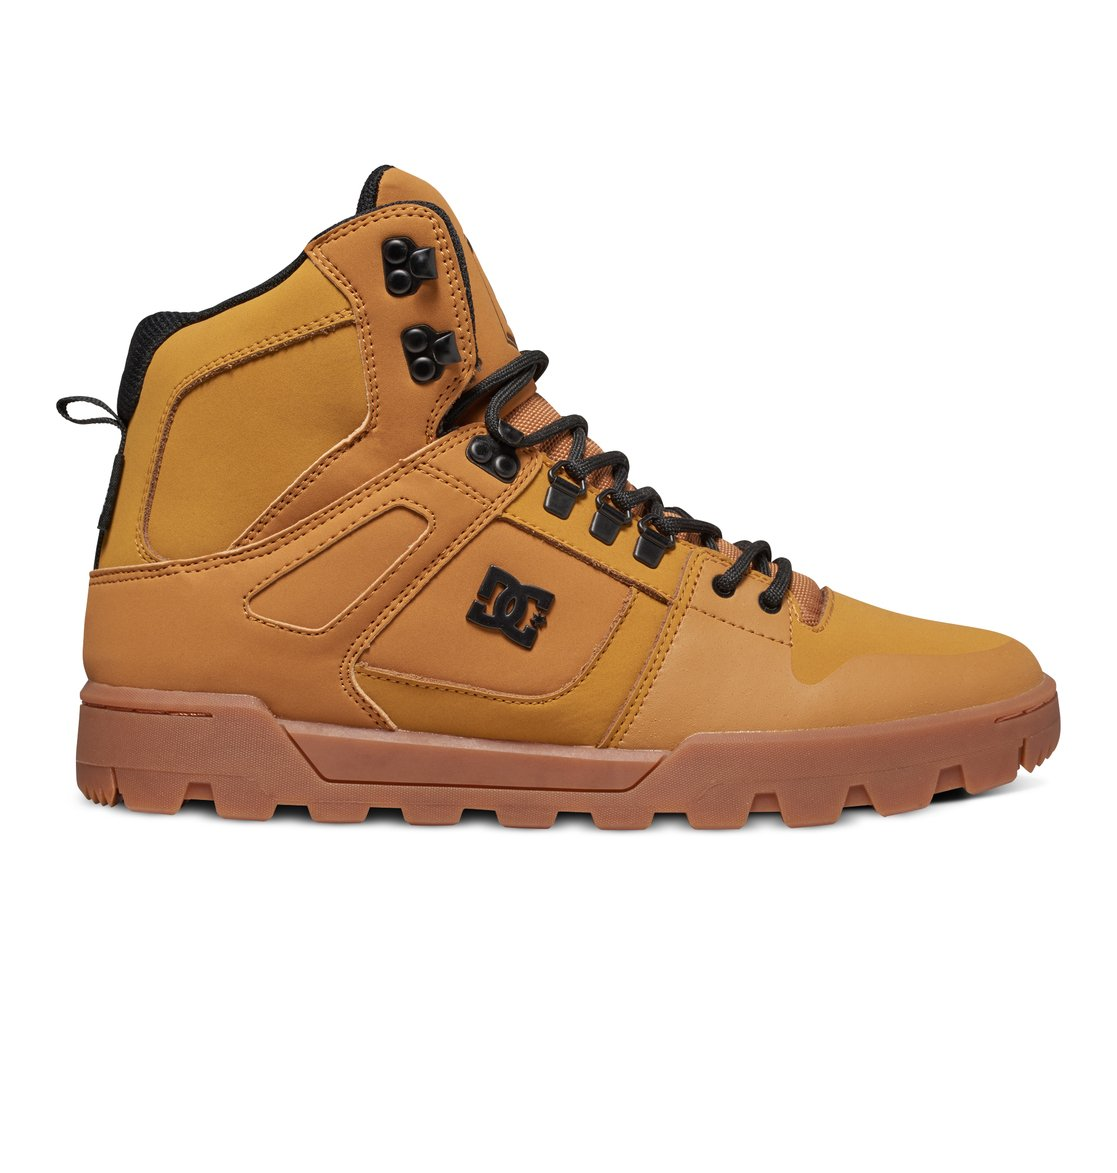 Spartan High Boot Mountain Boots ADYB100001 | DC Shoes